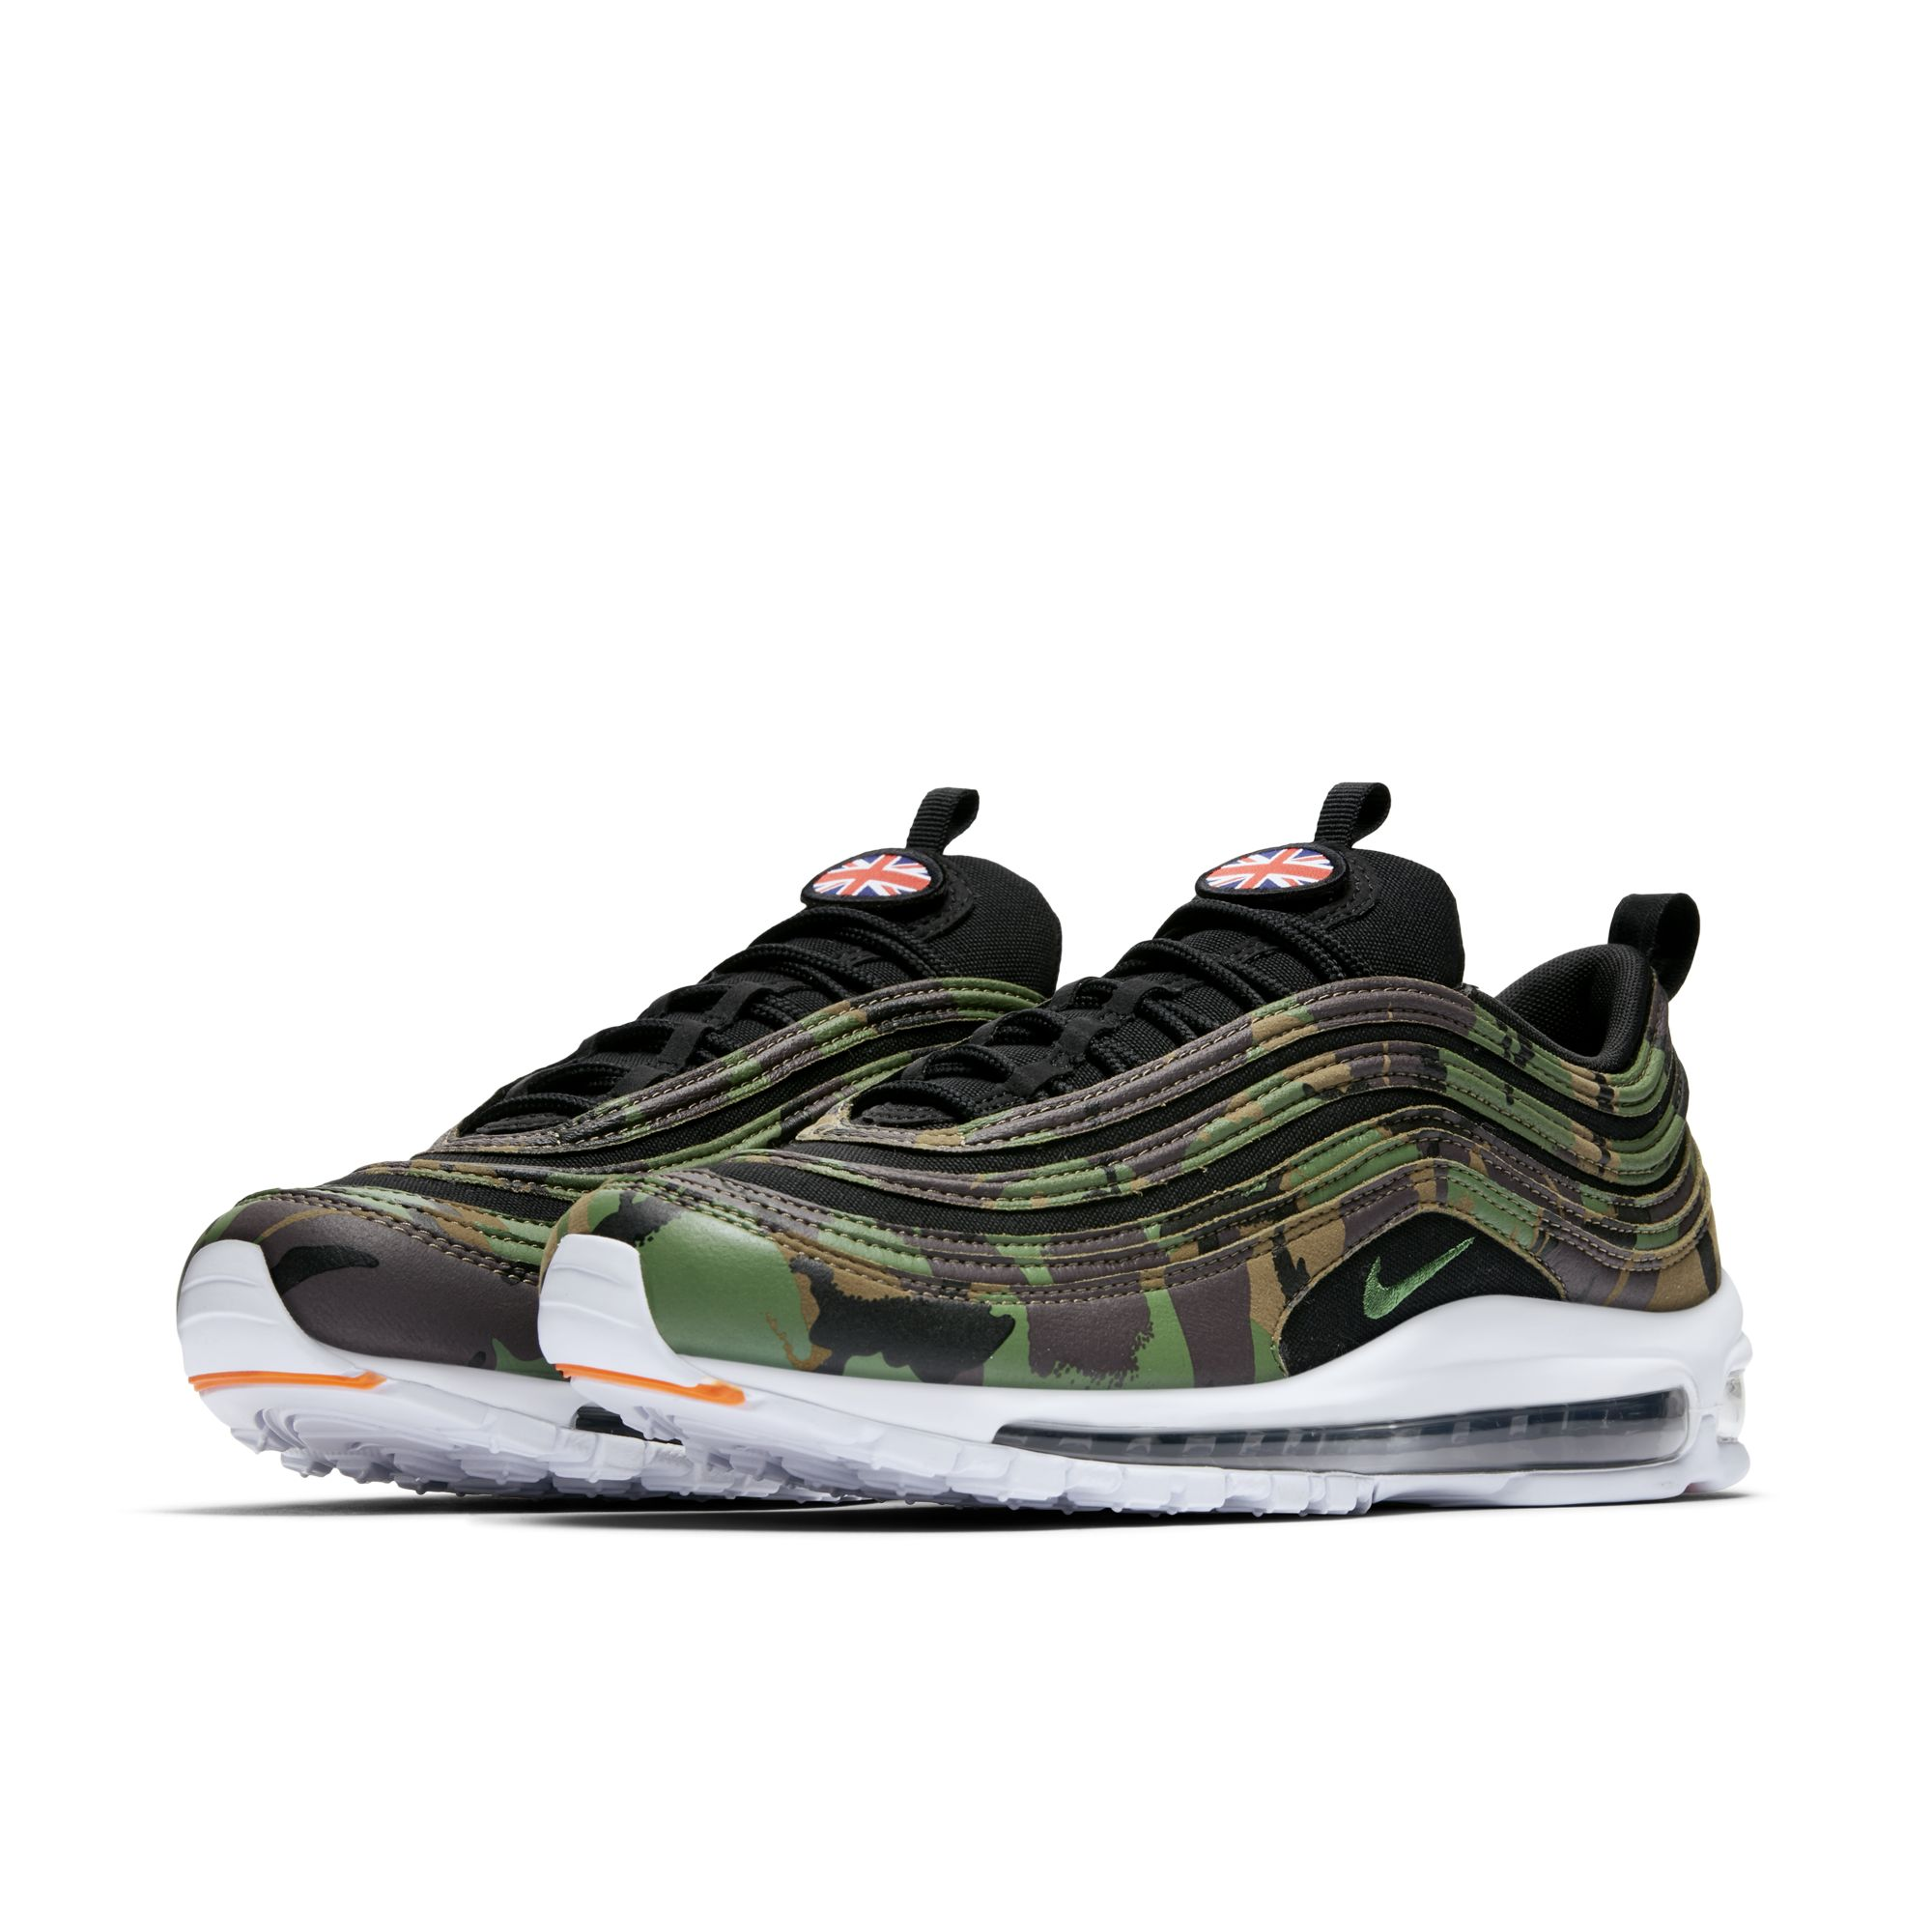 air max 97 italy camo pack